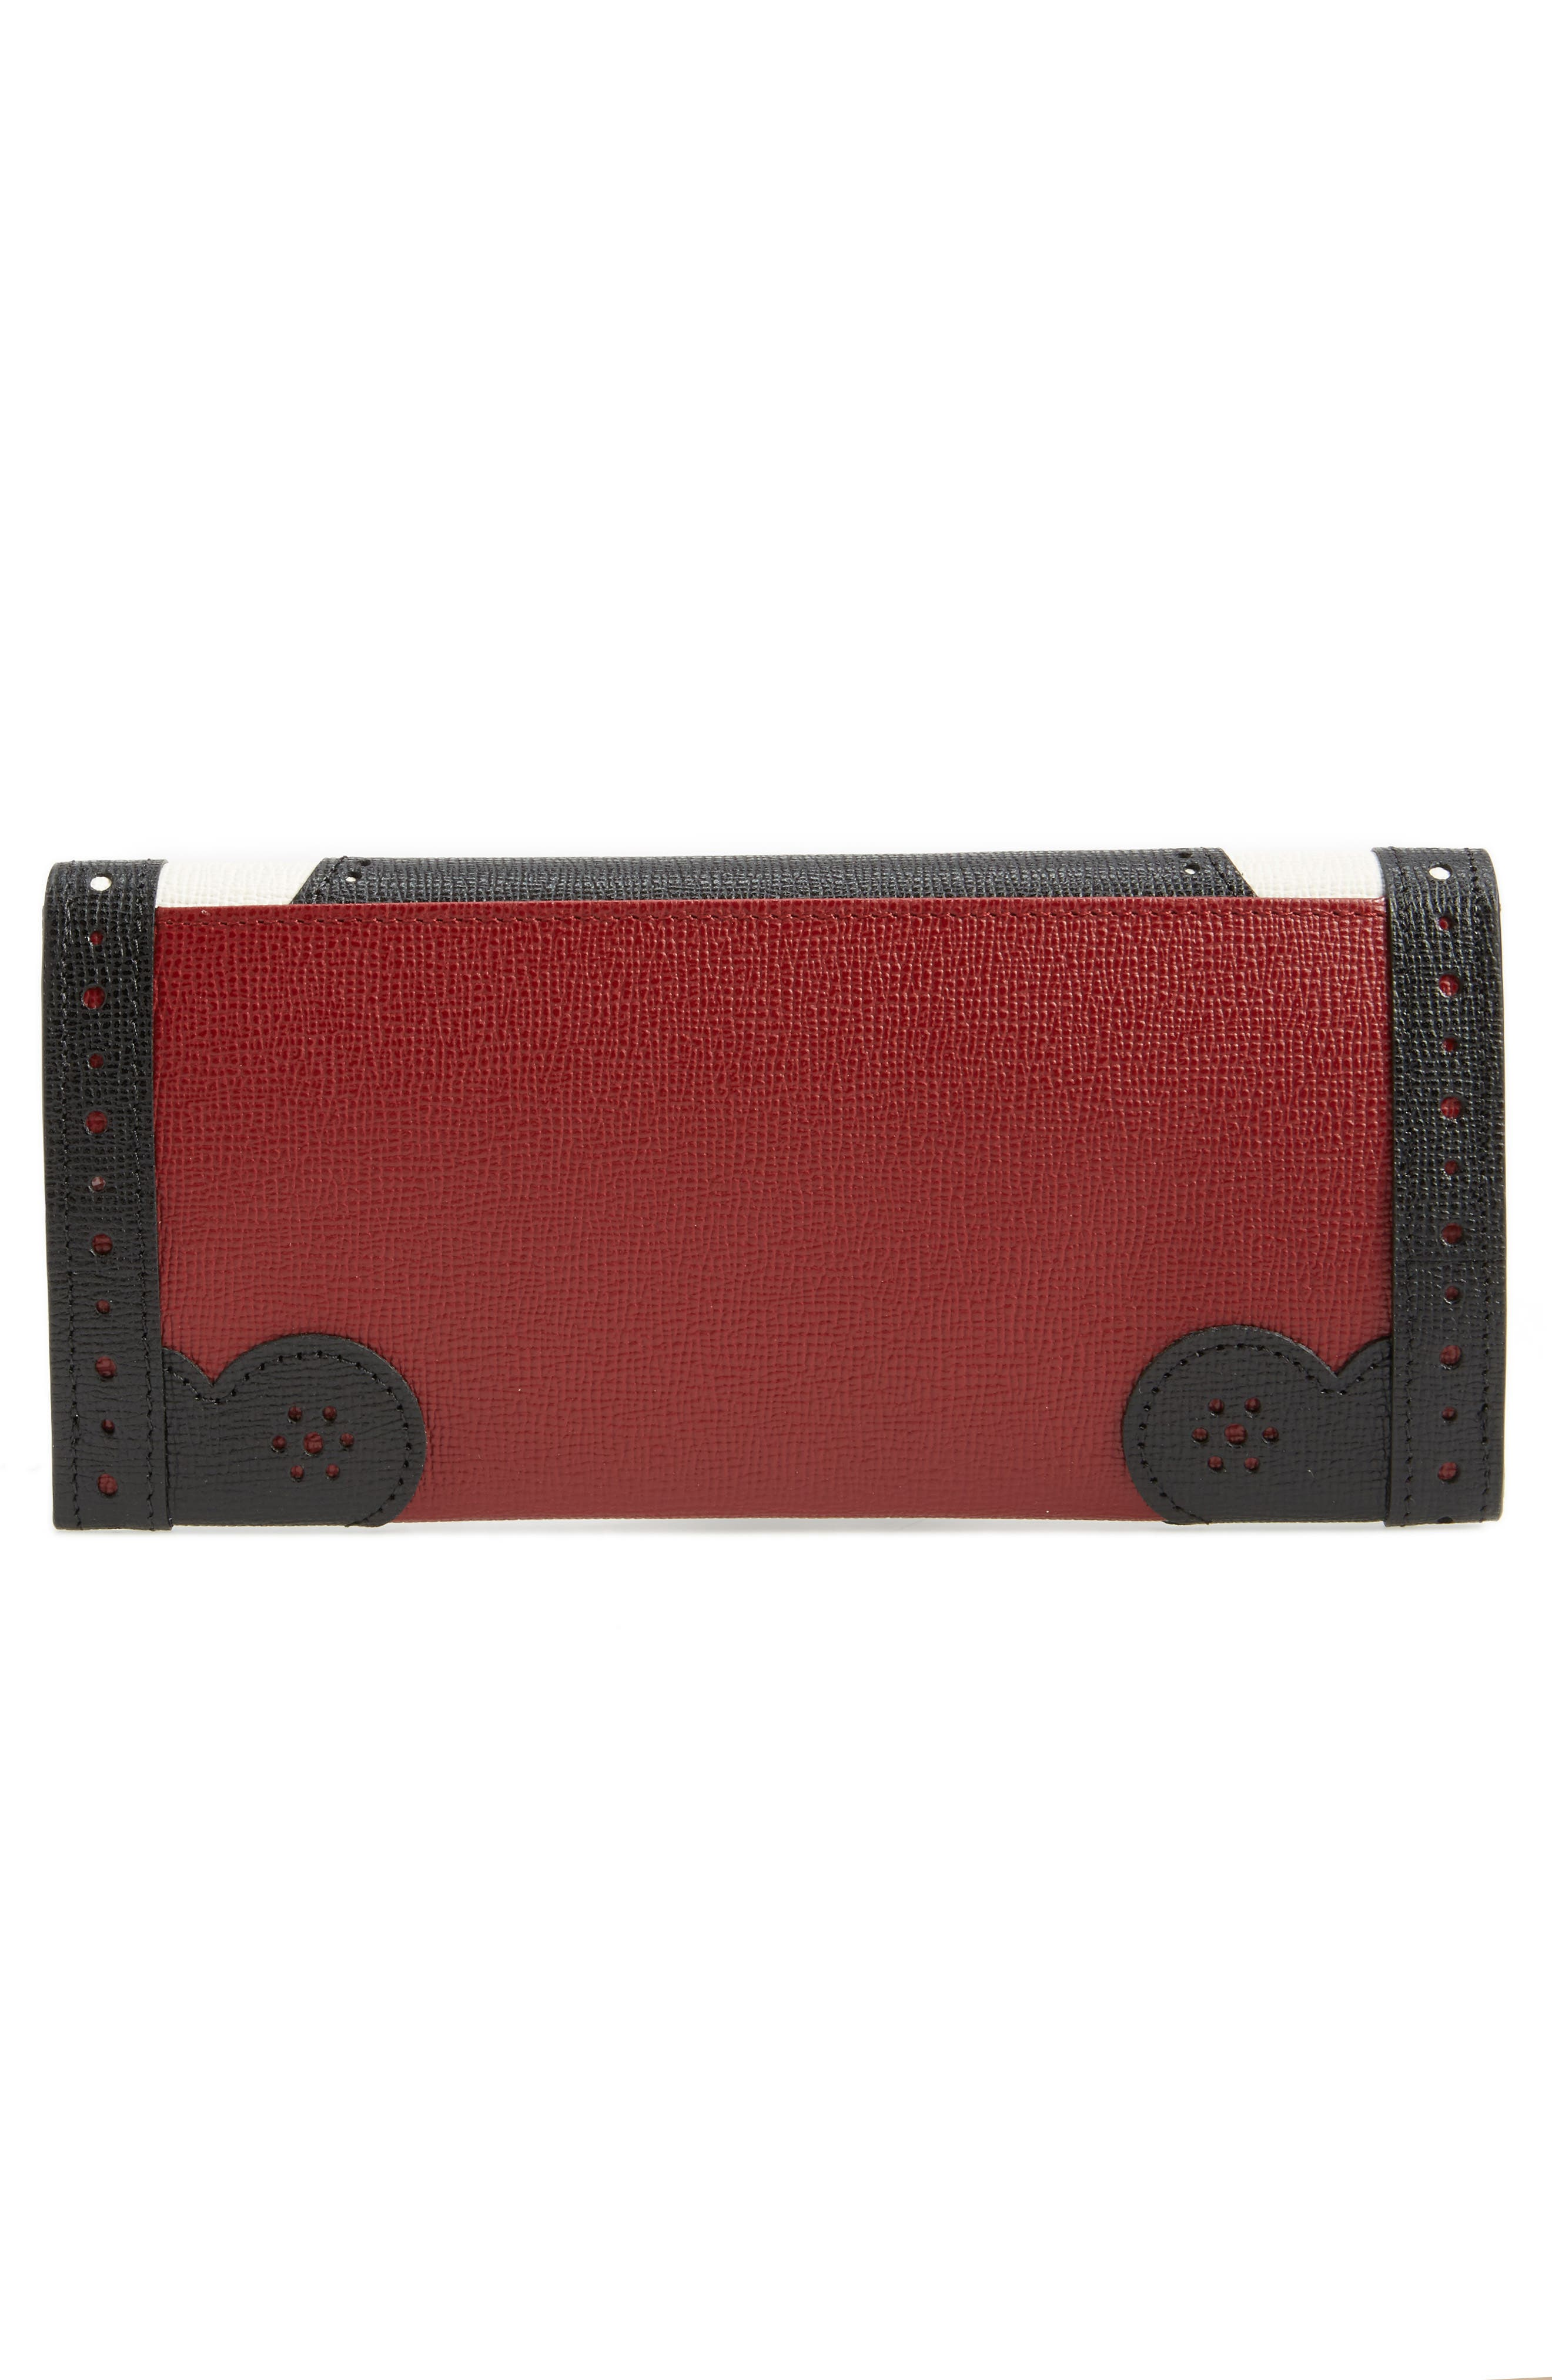 Effrontée Leather Wallet,                             Alternate thumbnail 3, color,                             618